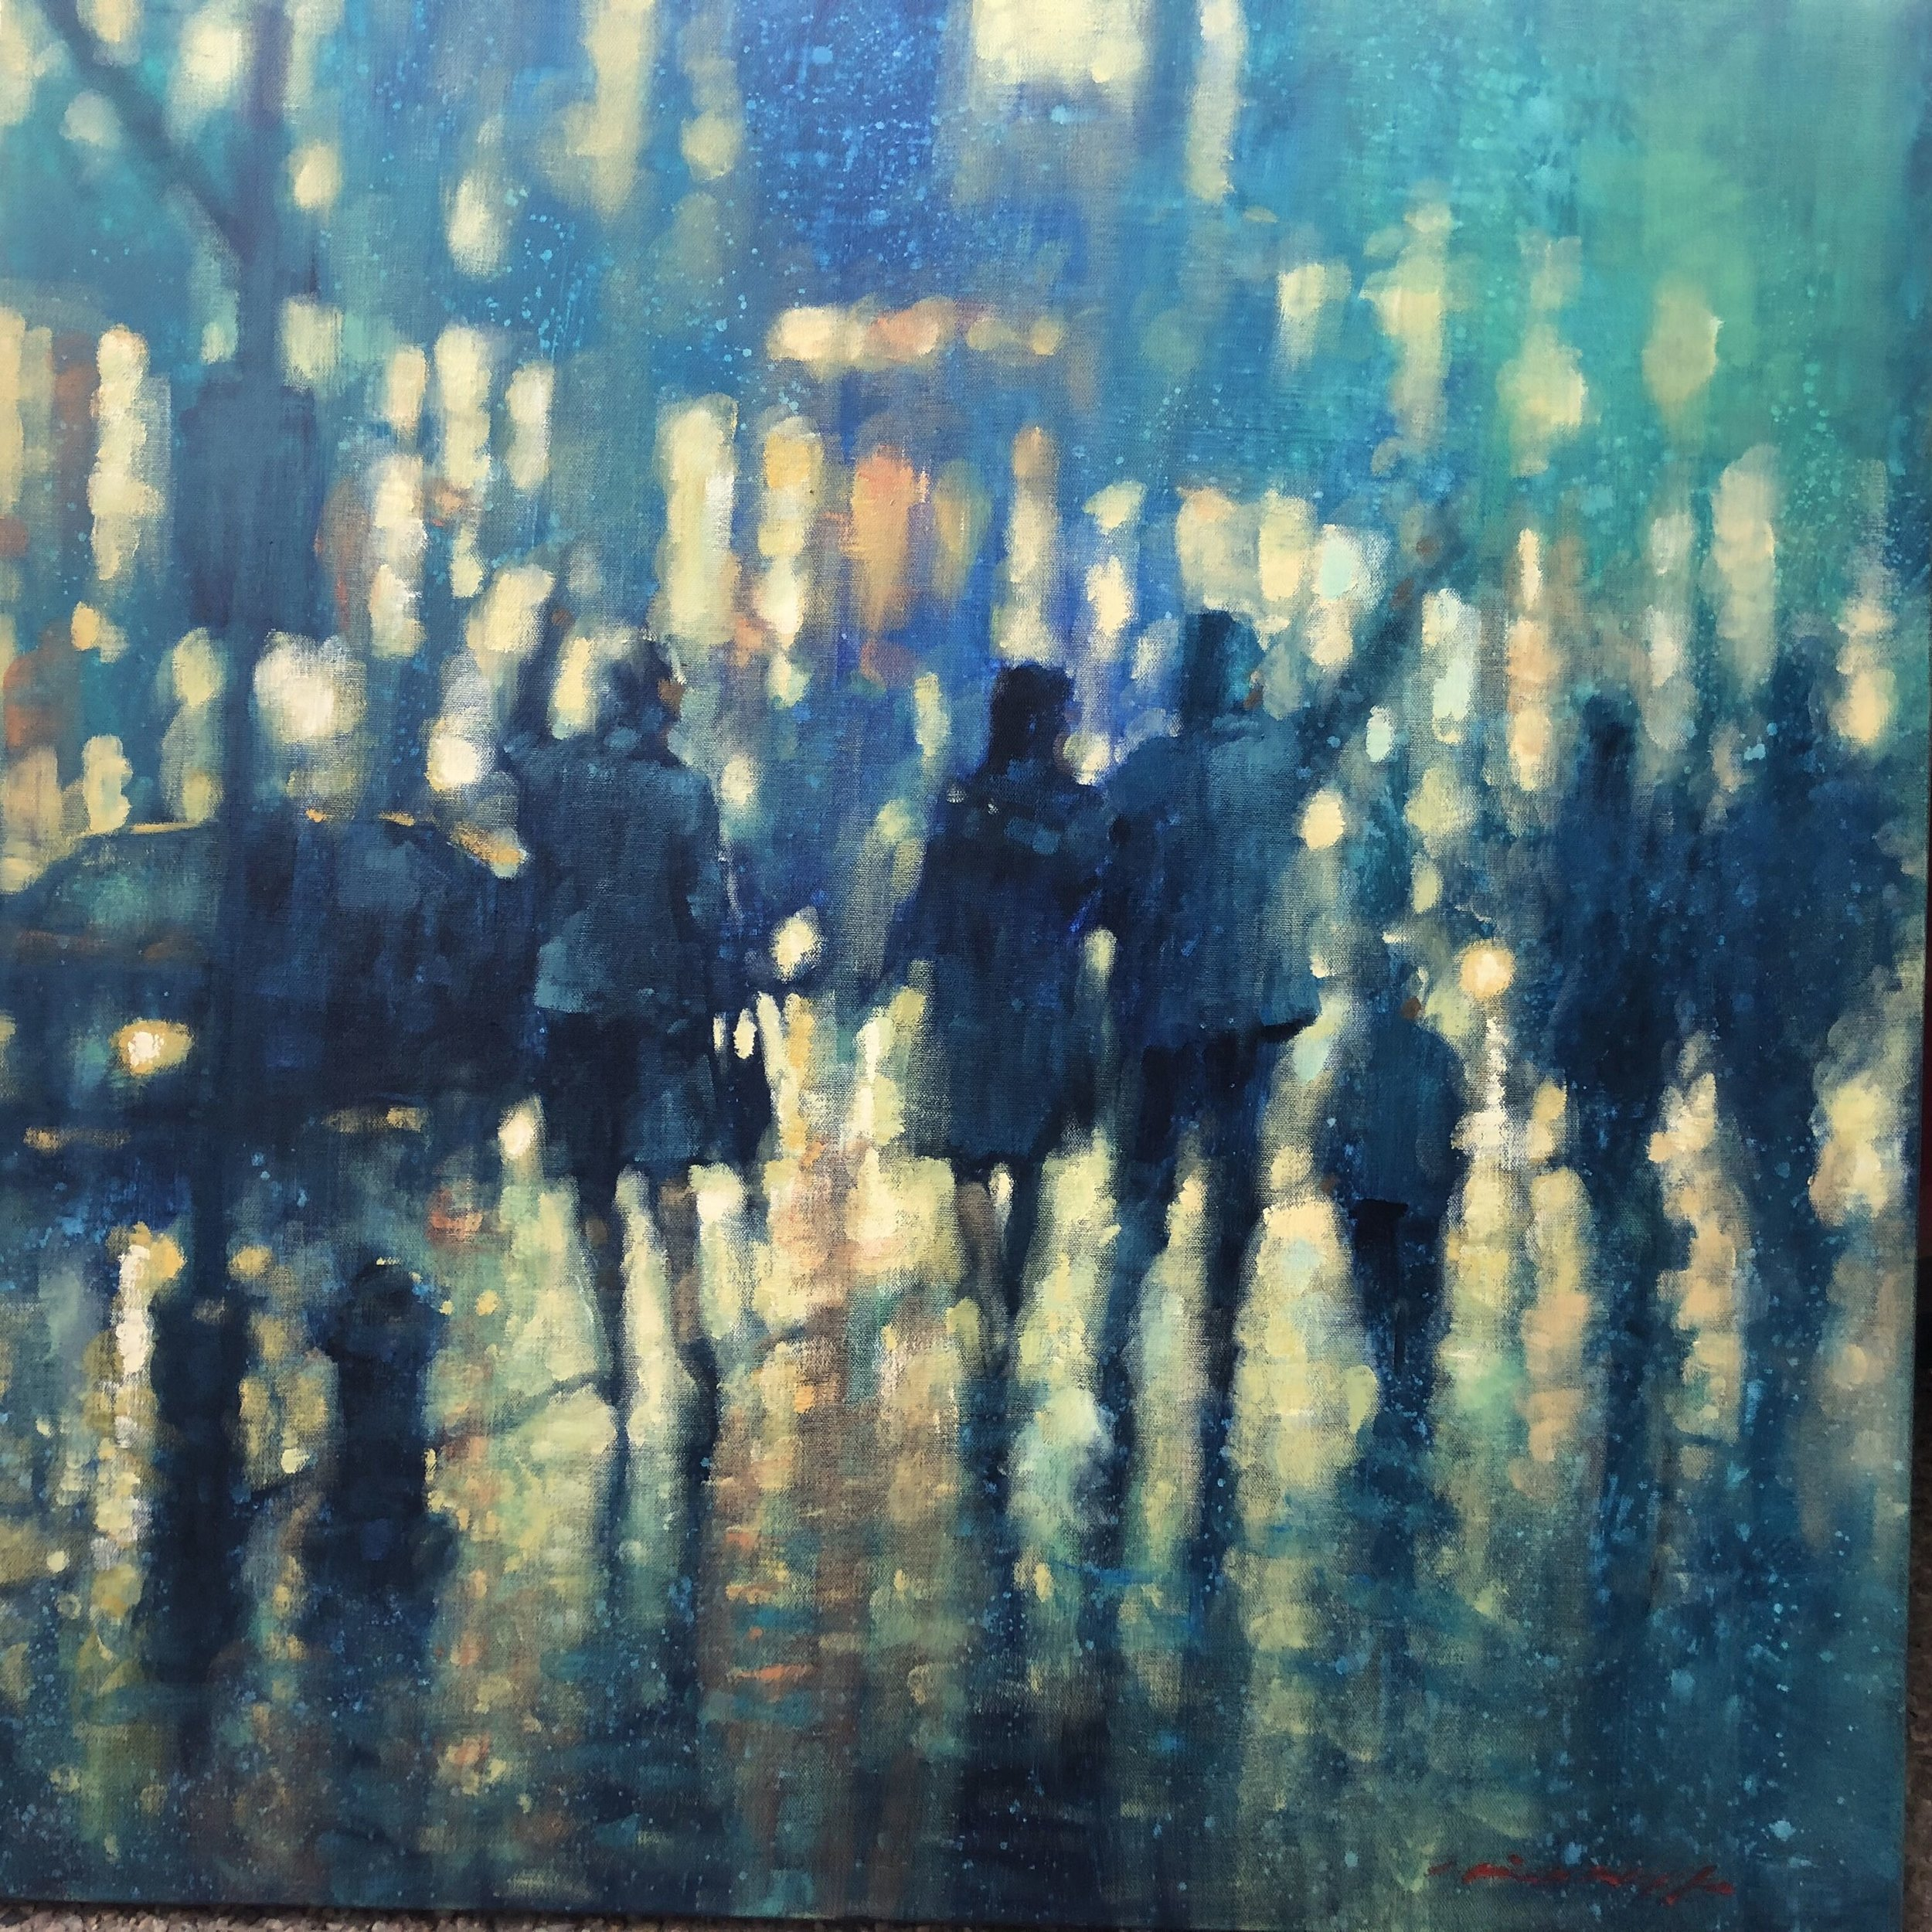 David Hinchliffe, Catching a Cab, Acrylic and oil on canvas, 91x91cm